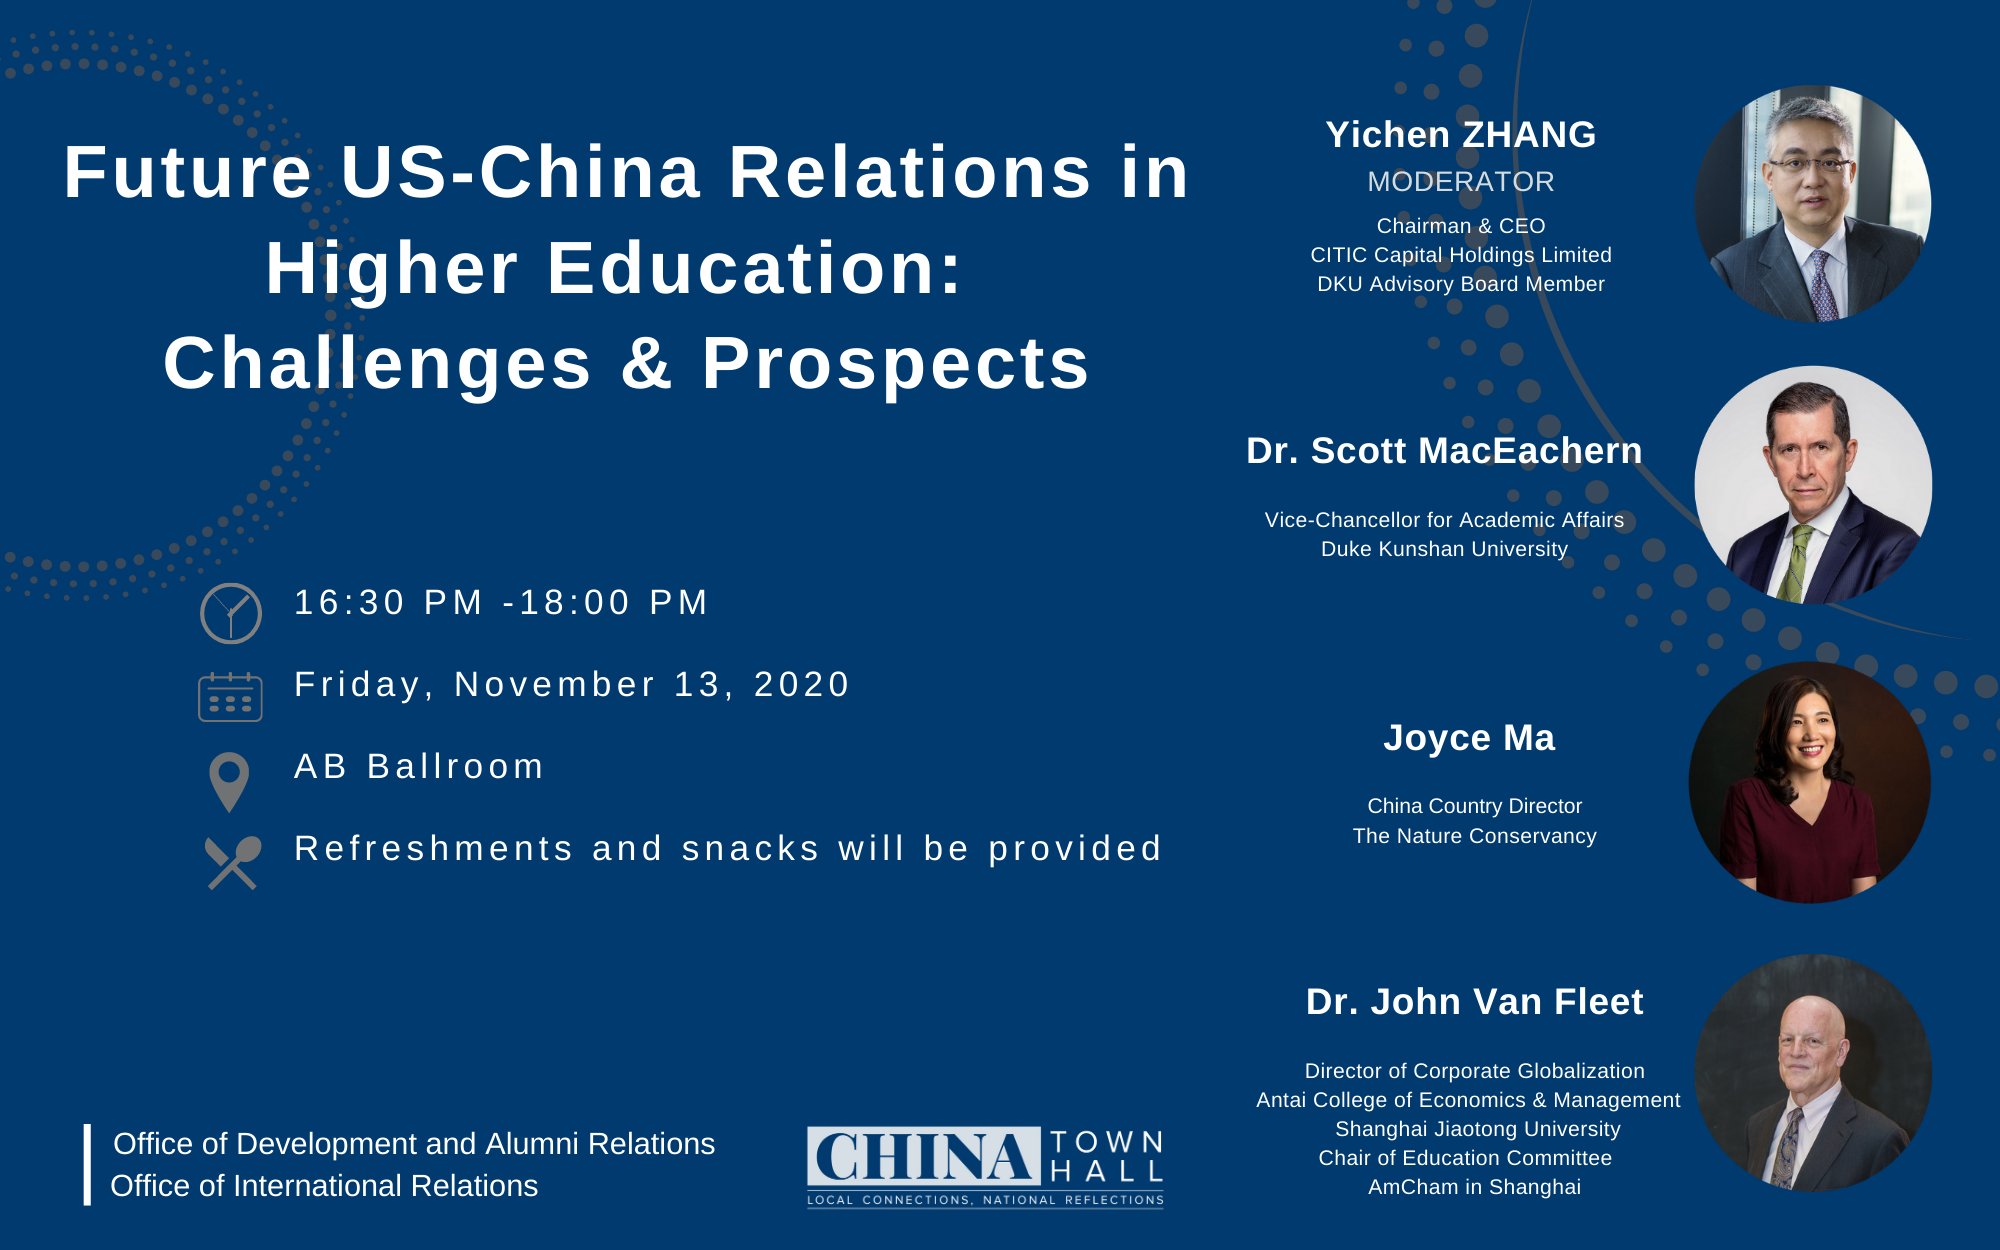 DKU China Town Hall 2020 event title, time, and speakers